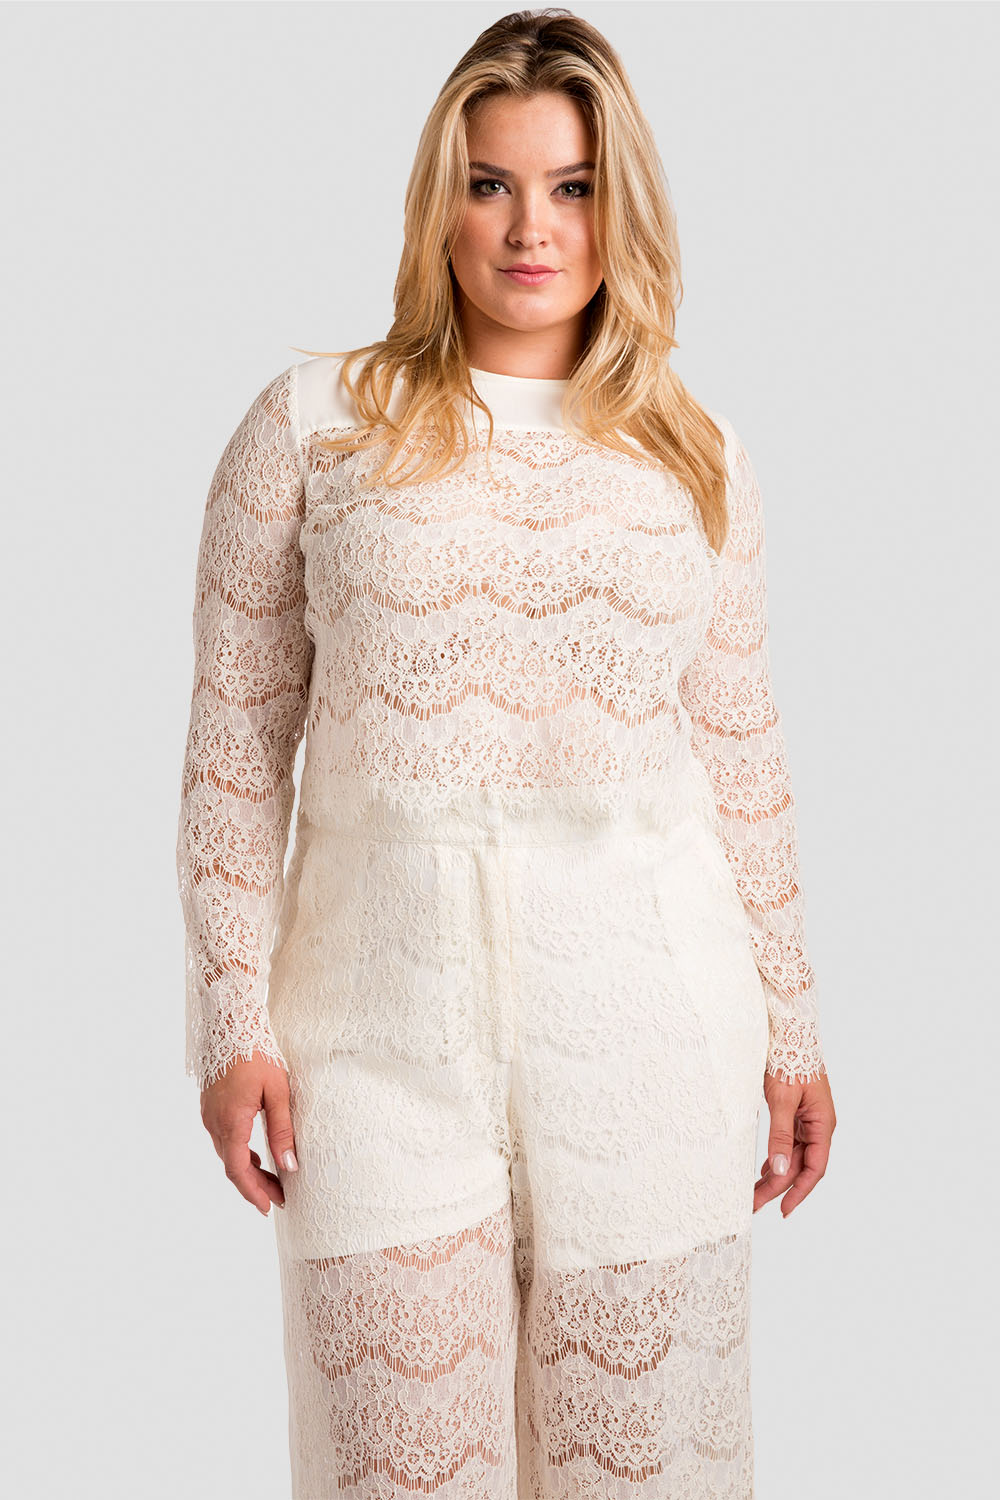 Plus Size Women's Ivory Lace Skimmer Top